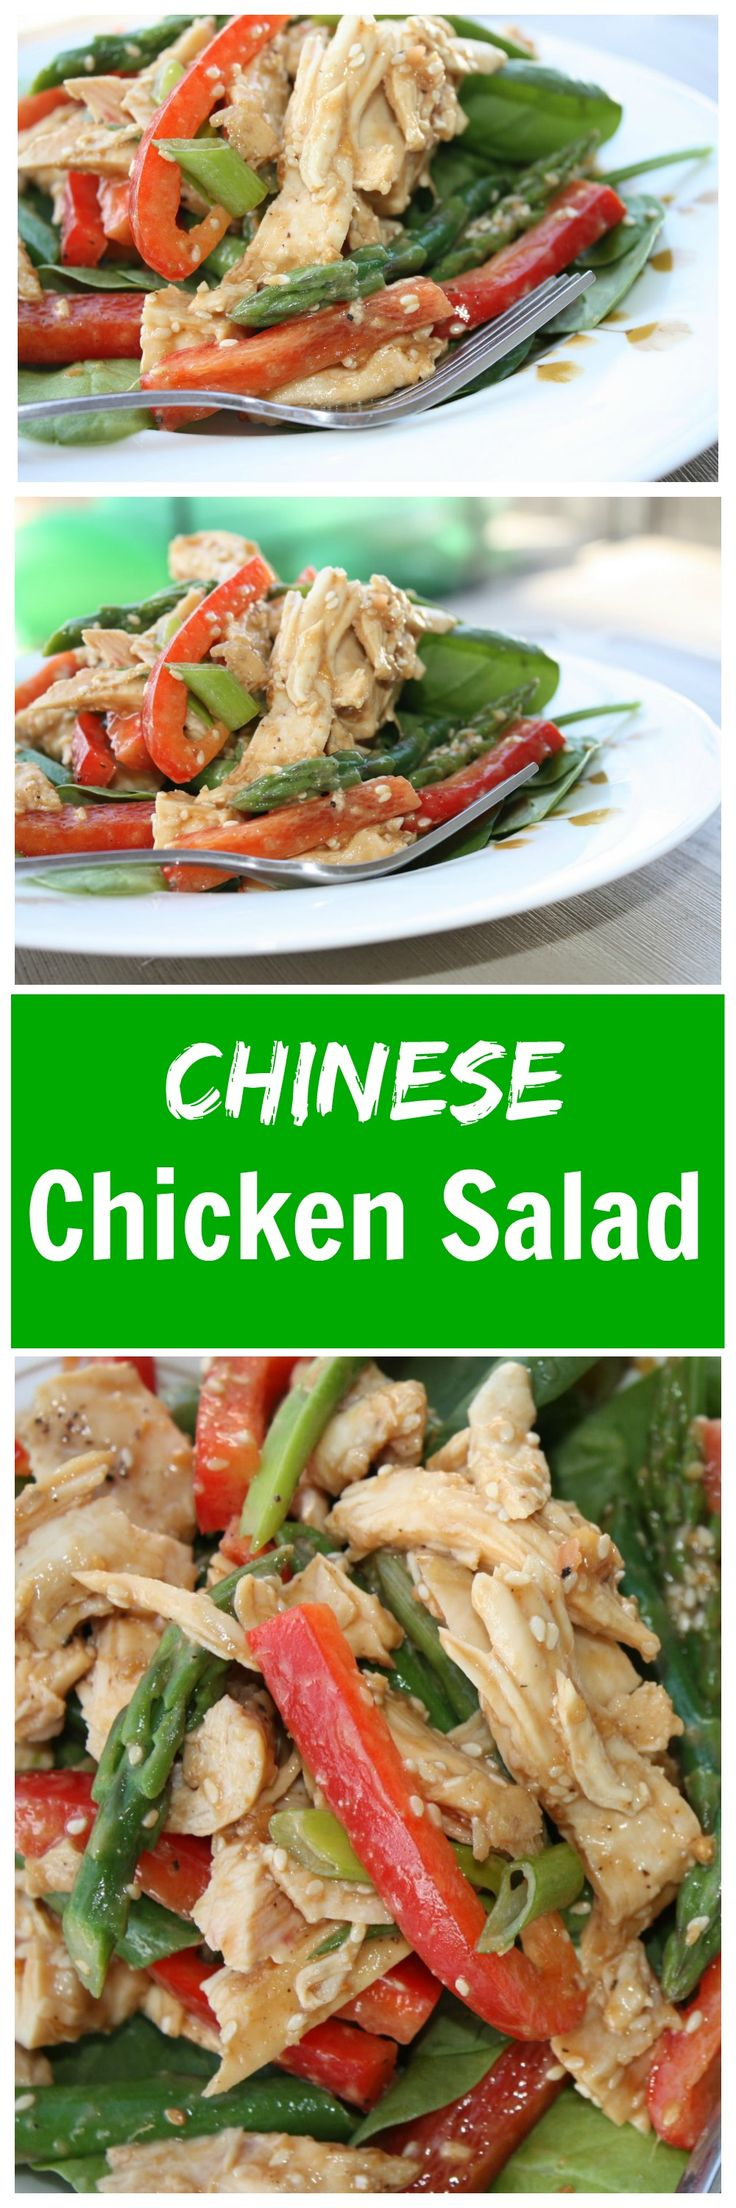 Love this Chinese Chicken Salad from Ina Garten (aka Barefoot Contessa), one of my all time favorites! Great recipe for spring! Recipe via aggieskitchen.com